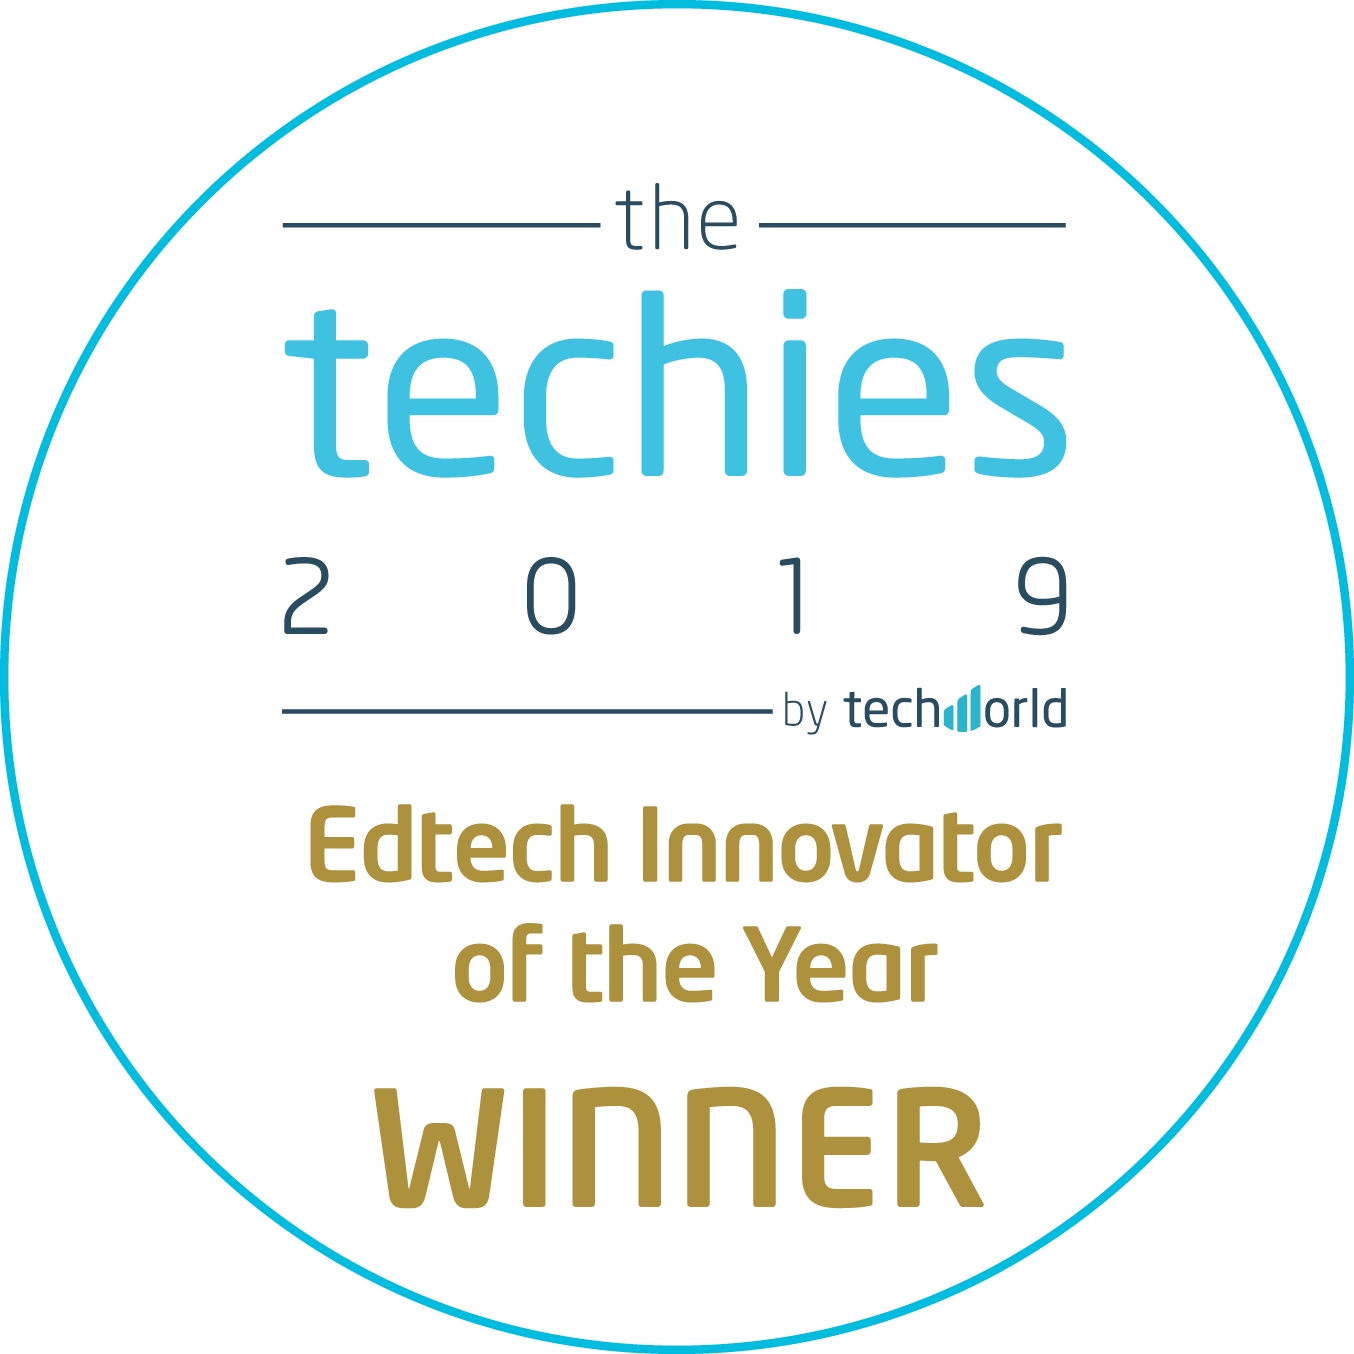 The Techies Awards Logo showcasing Satchel as winners in the Edtech Innovator if the YEar cateogry in 2019